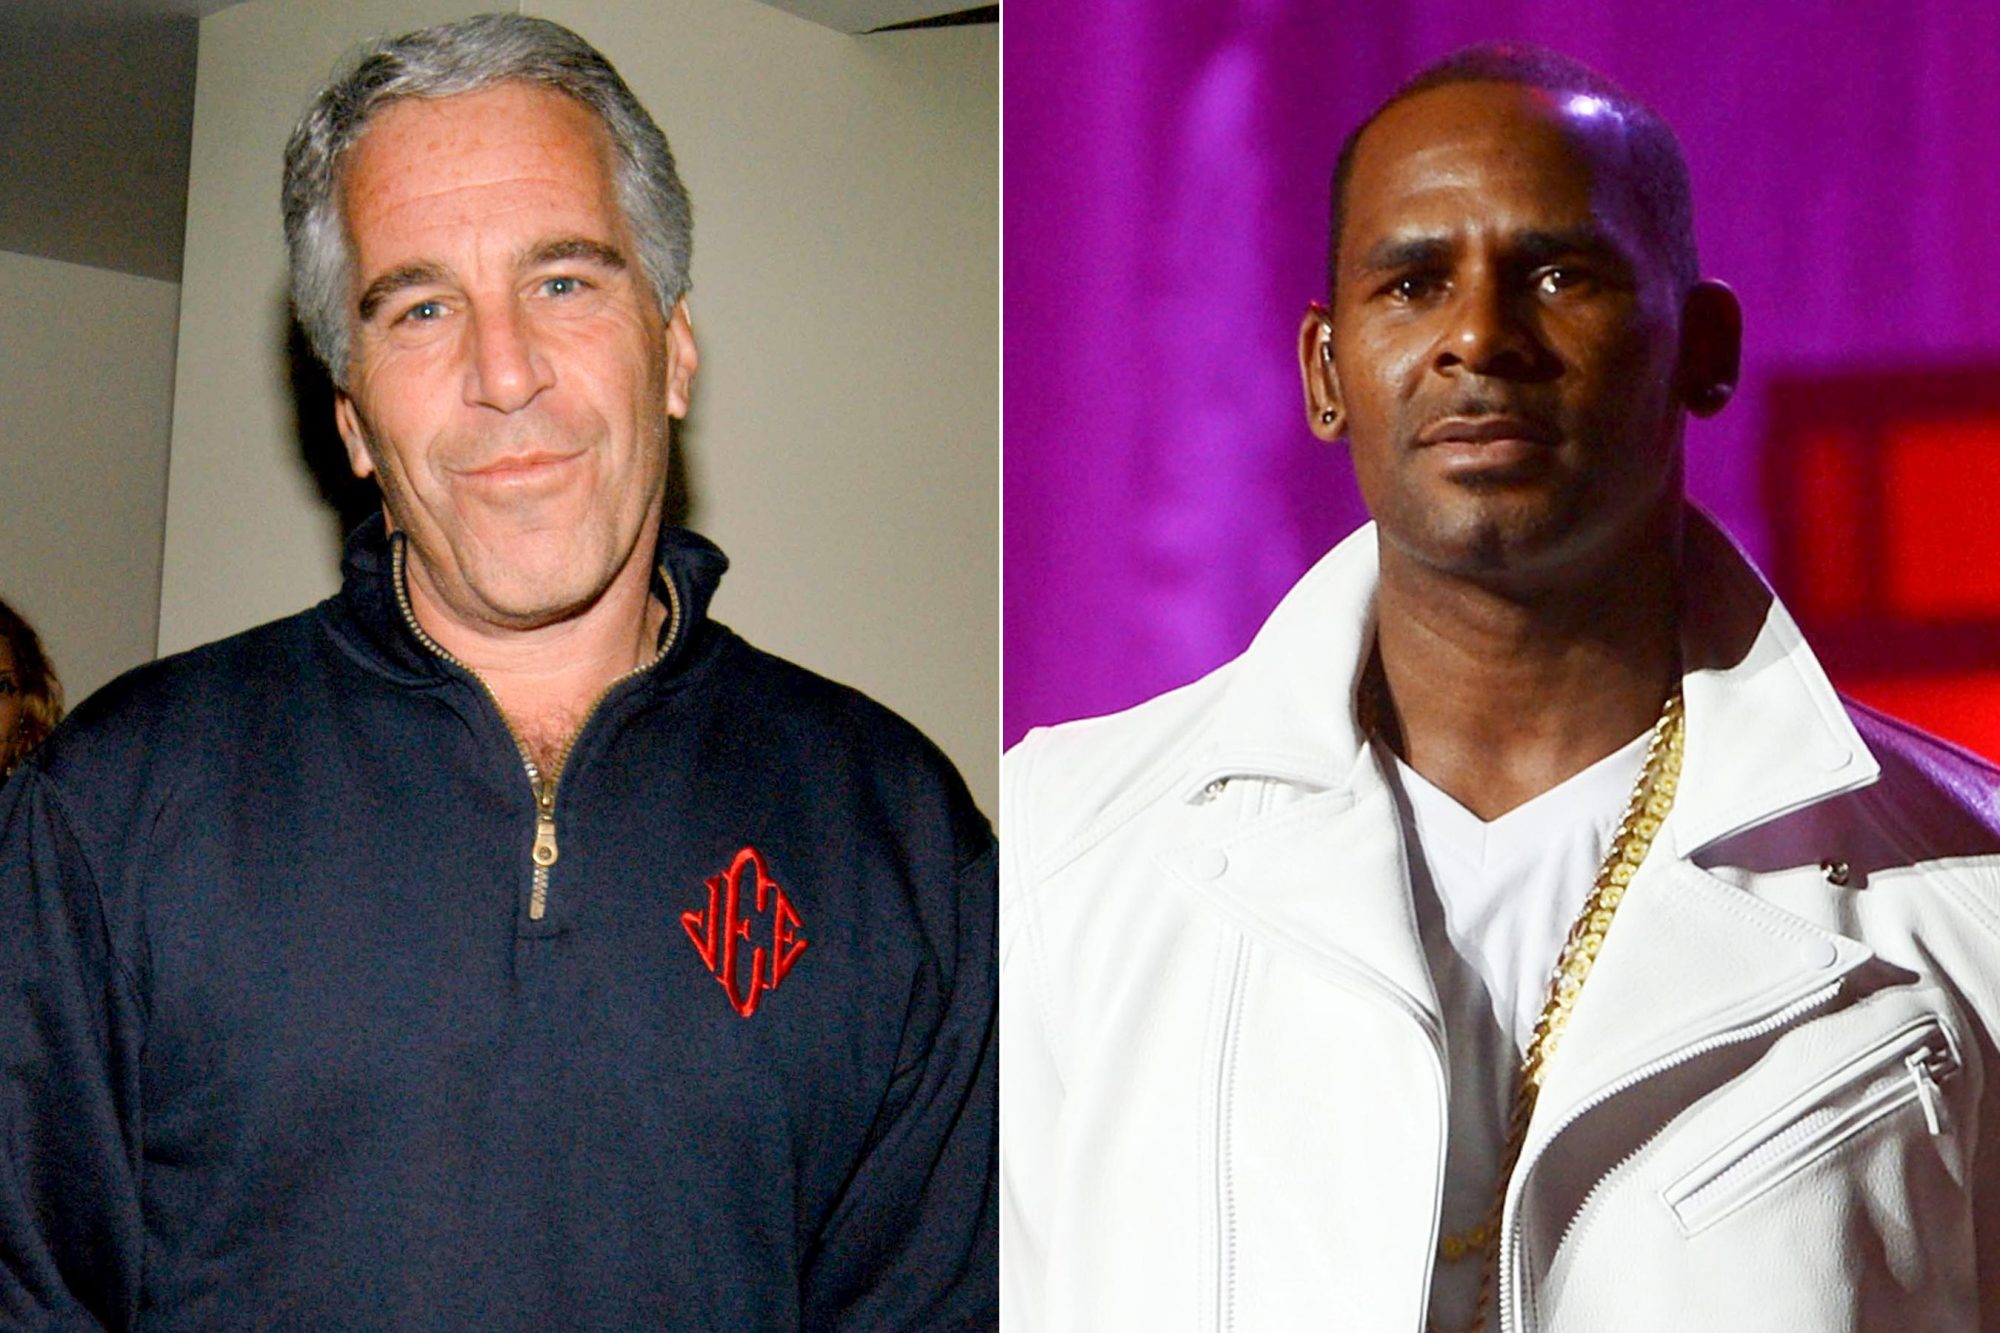 NEW YORK, NY - MAY 18: Jeffrey Epstein attends Launch of RADAR MAGAZINE at Hotel QT on May 18, 2005. (Photo by Neil Rasmus/Patrick McMullan via Getty Images) NEW YORK, NY - NOVEMBER 21: R. Kelly performs at MSG Theater on November 21, 2012 in New York City. (Photo by Jason Kempin/Getty Images)